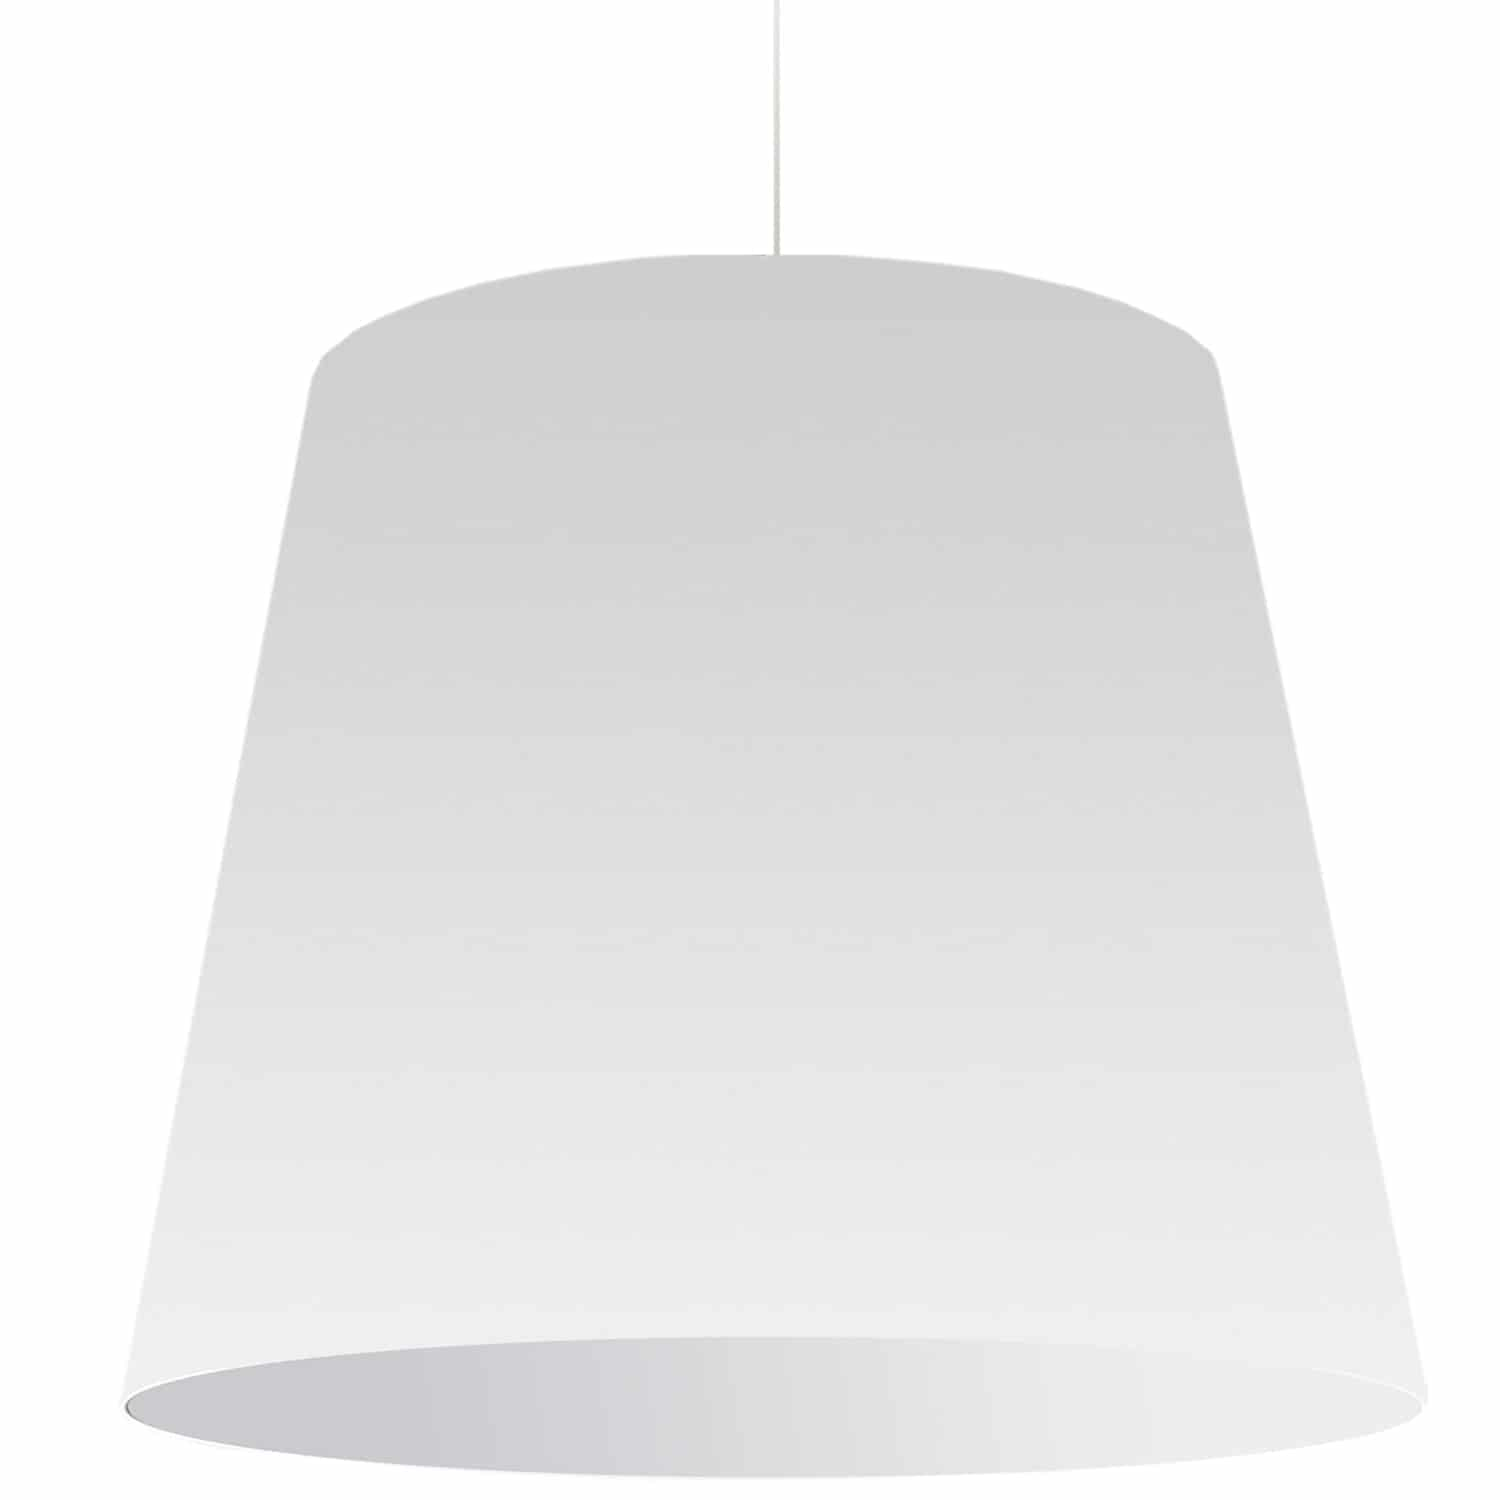 1 Light Oversized Drum Pendant X-Large White Shade